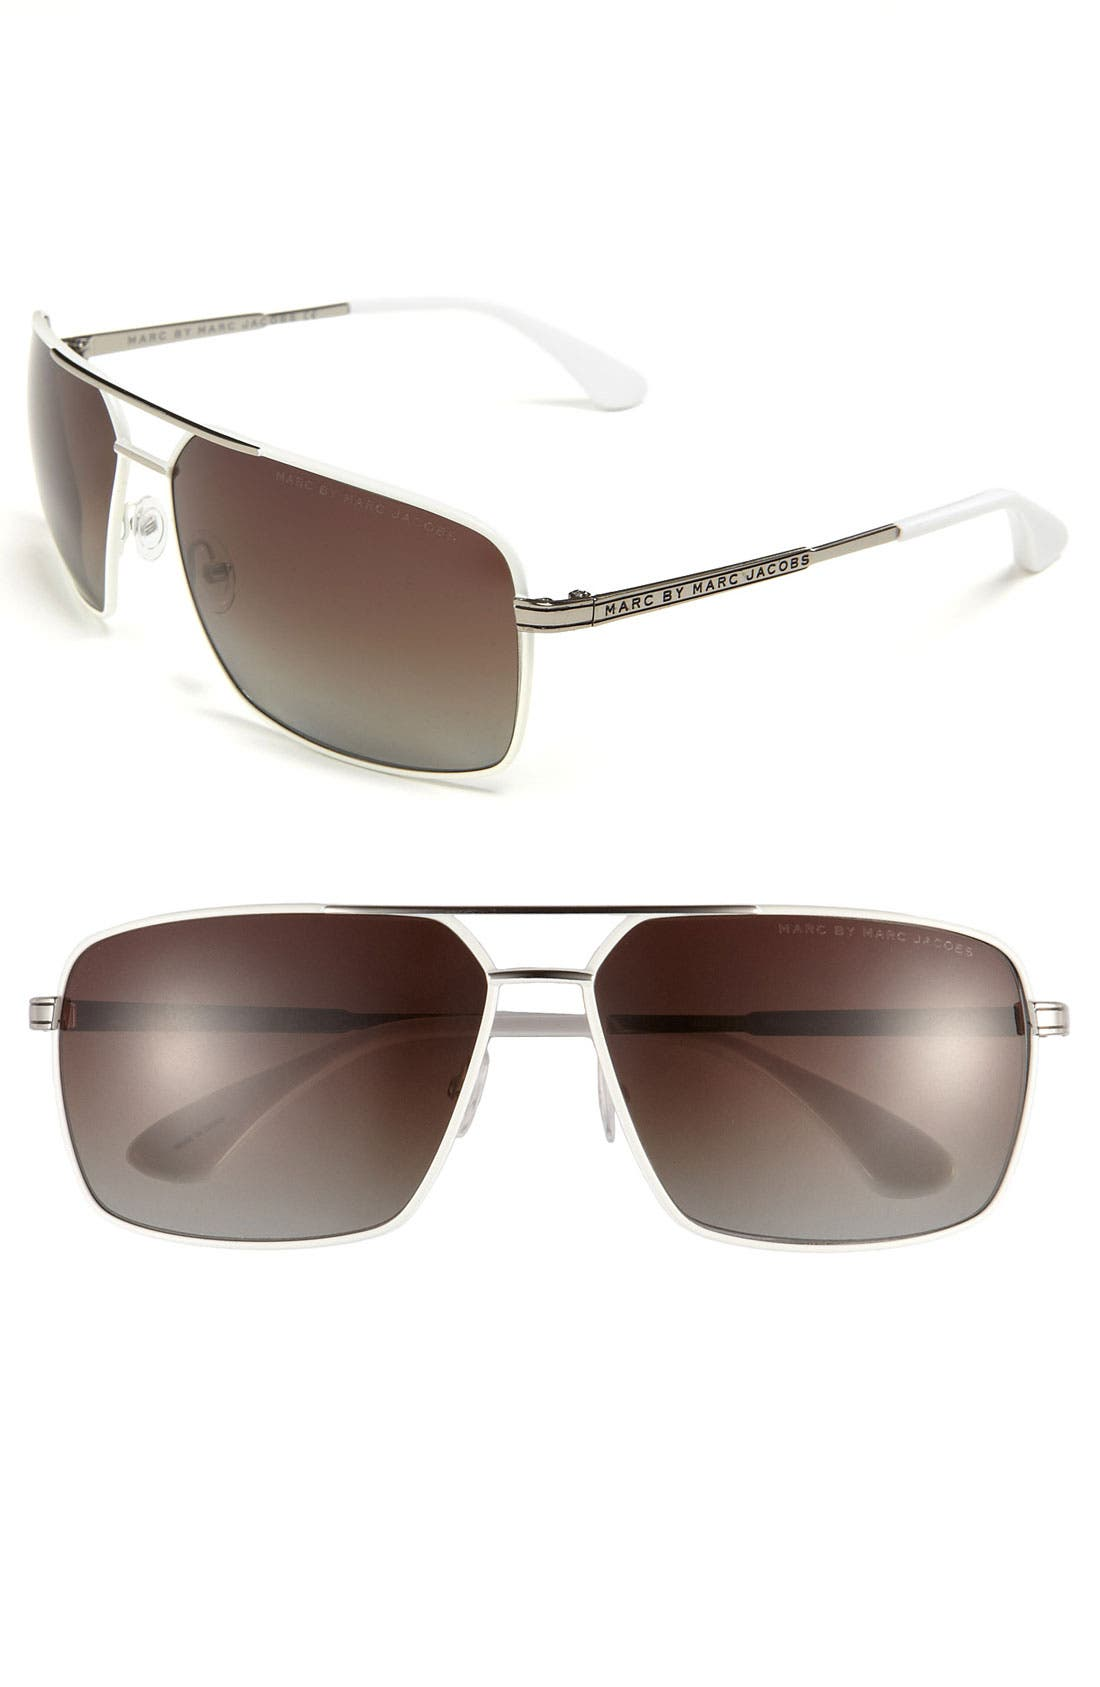 Main Image - MARC BY MARC JACOBS Polarized Aviator Sunglasses